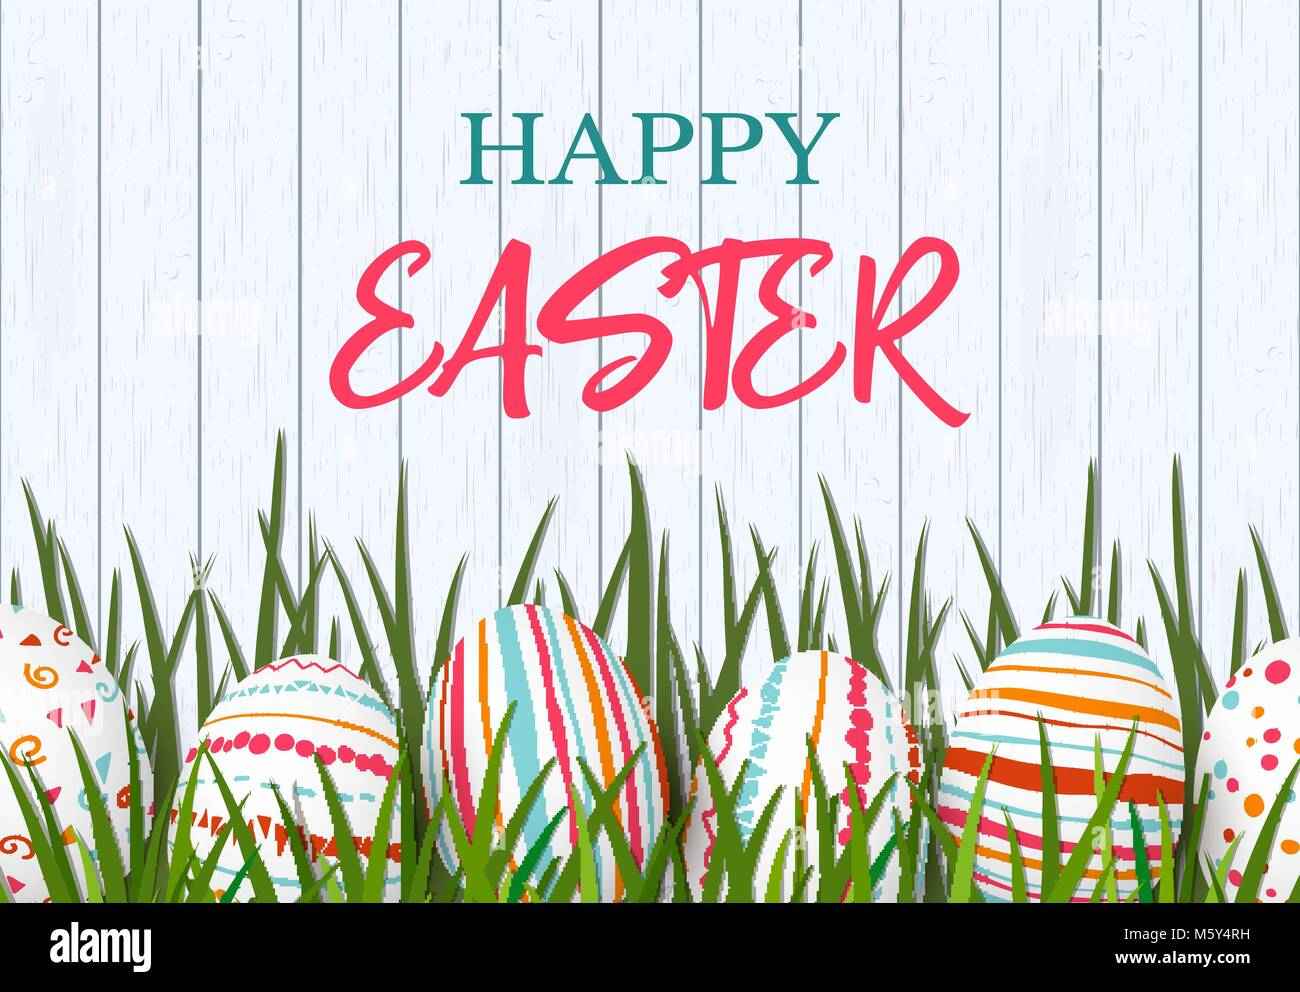 Gift whirls stock photos gift whirls stock images alamy happy easter easter colorful eggs in row with different simple colorful ornaments white wooden negle Gallery